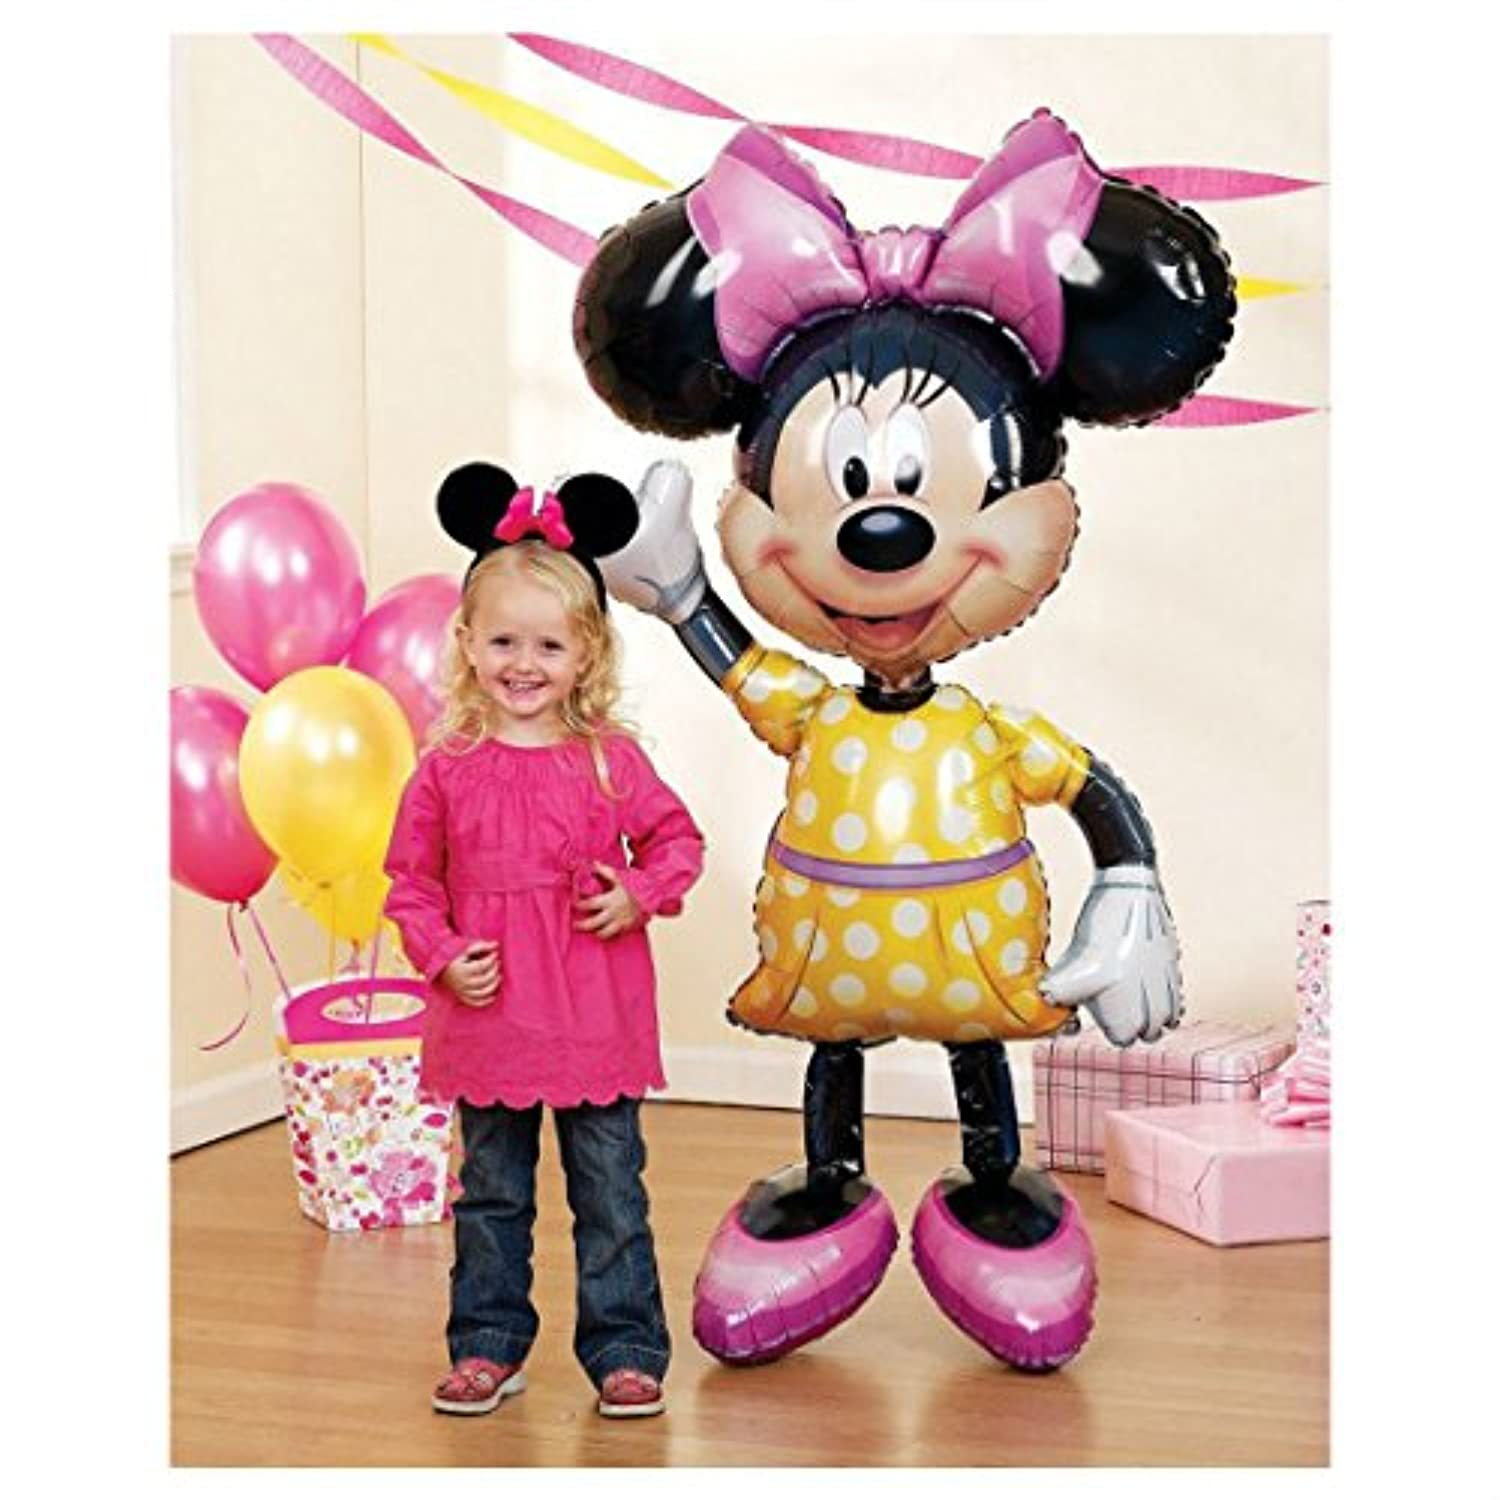 Jumbo Minnie Mouse Airwalker 54 Birthday Foil Balloon Decoration Party Supplies by Unknown